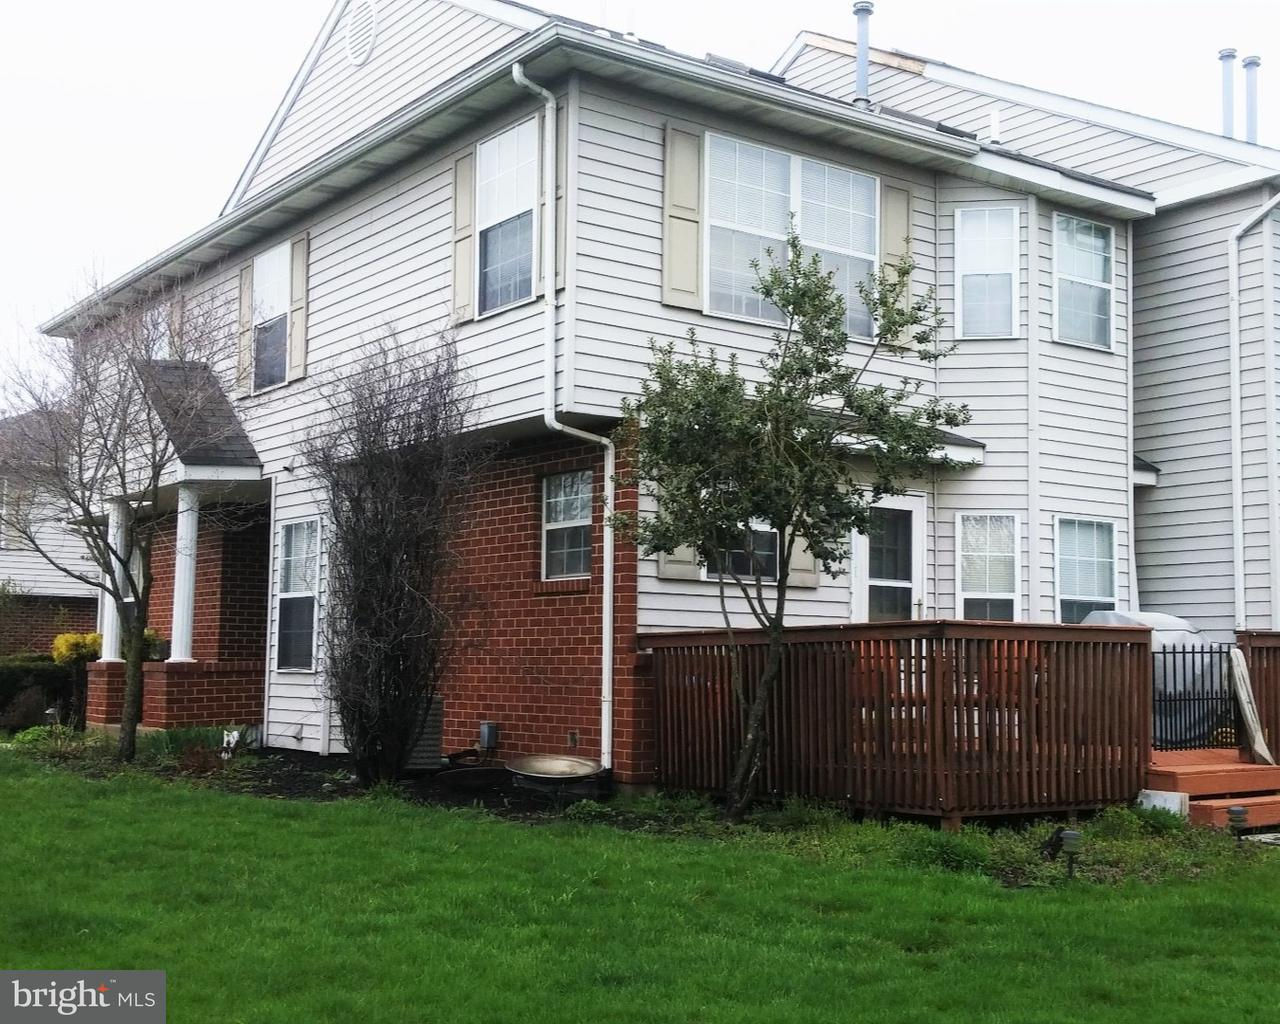 123 REGAL CT, ROYERSFORD - Listed at $225,900, ROYERSFORD